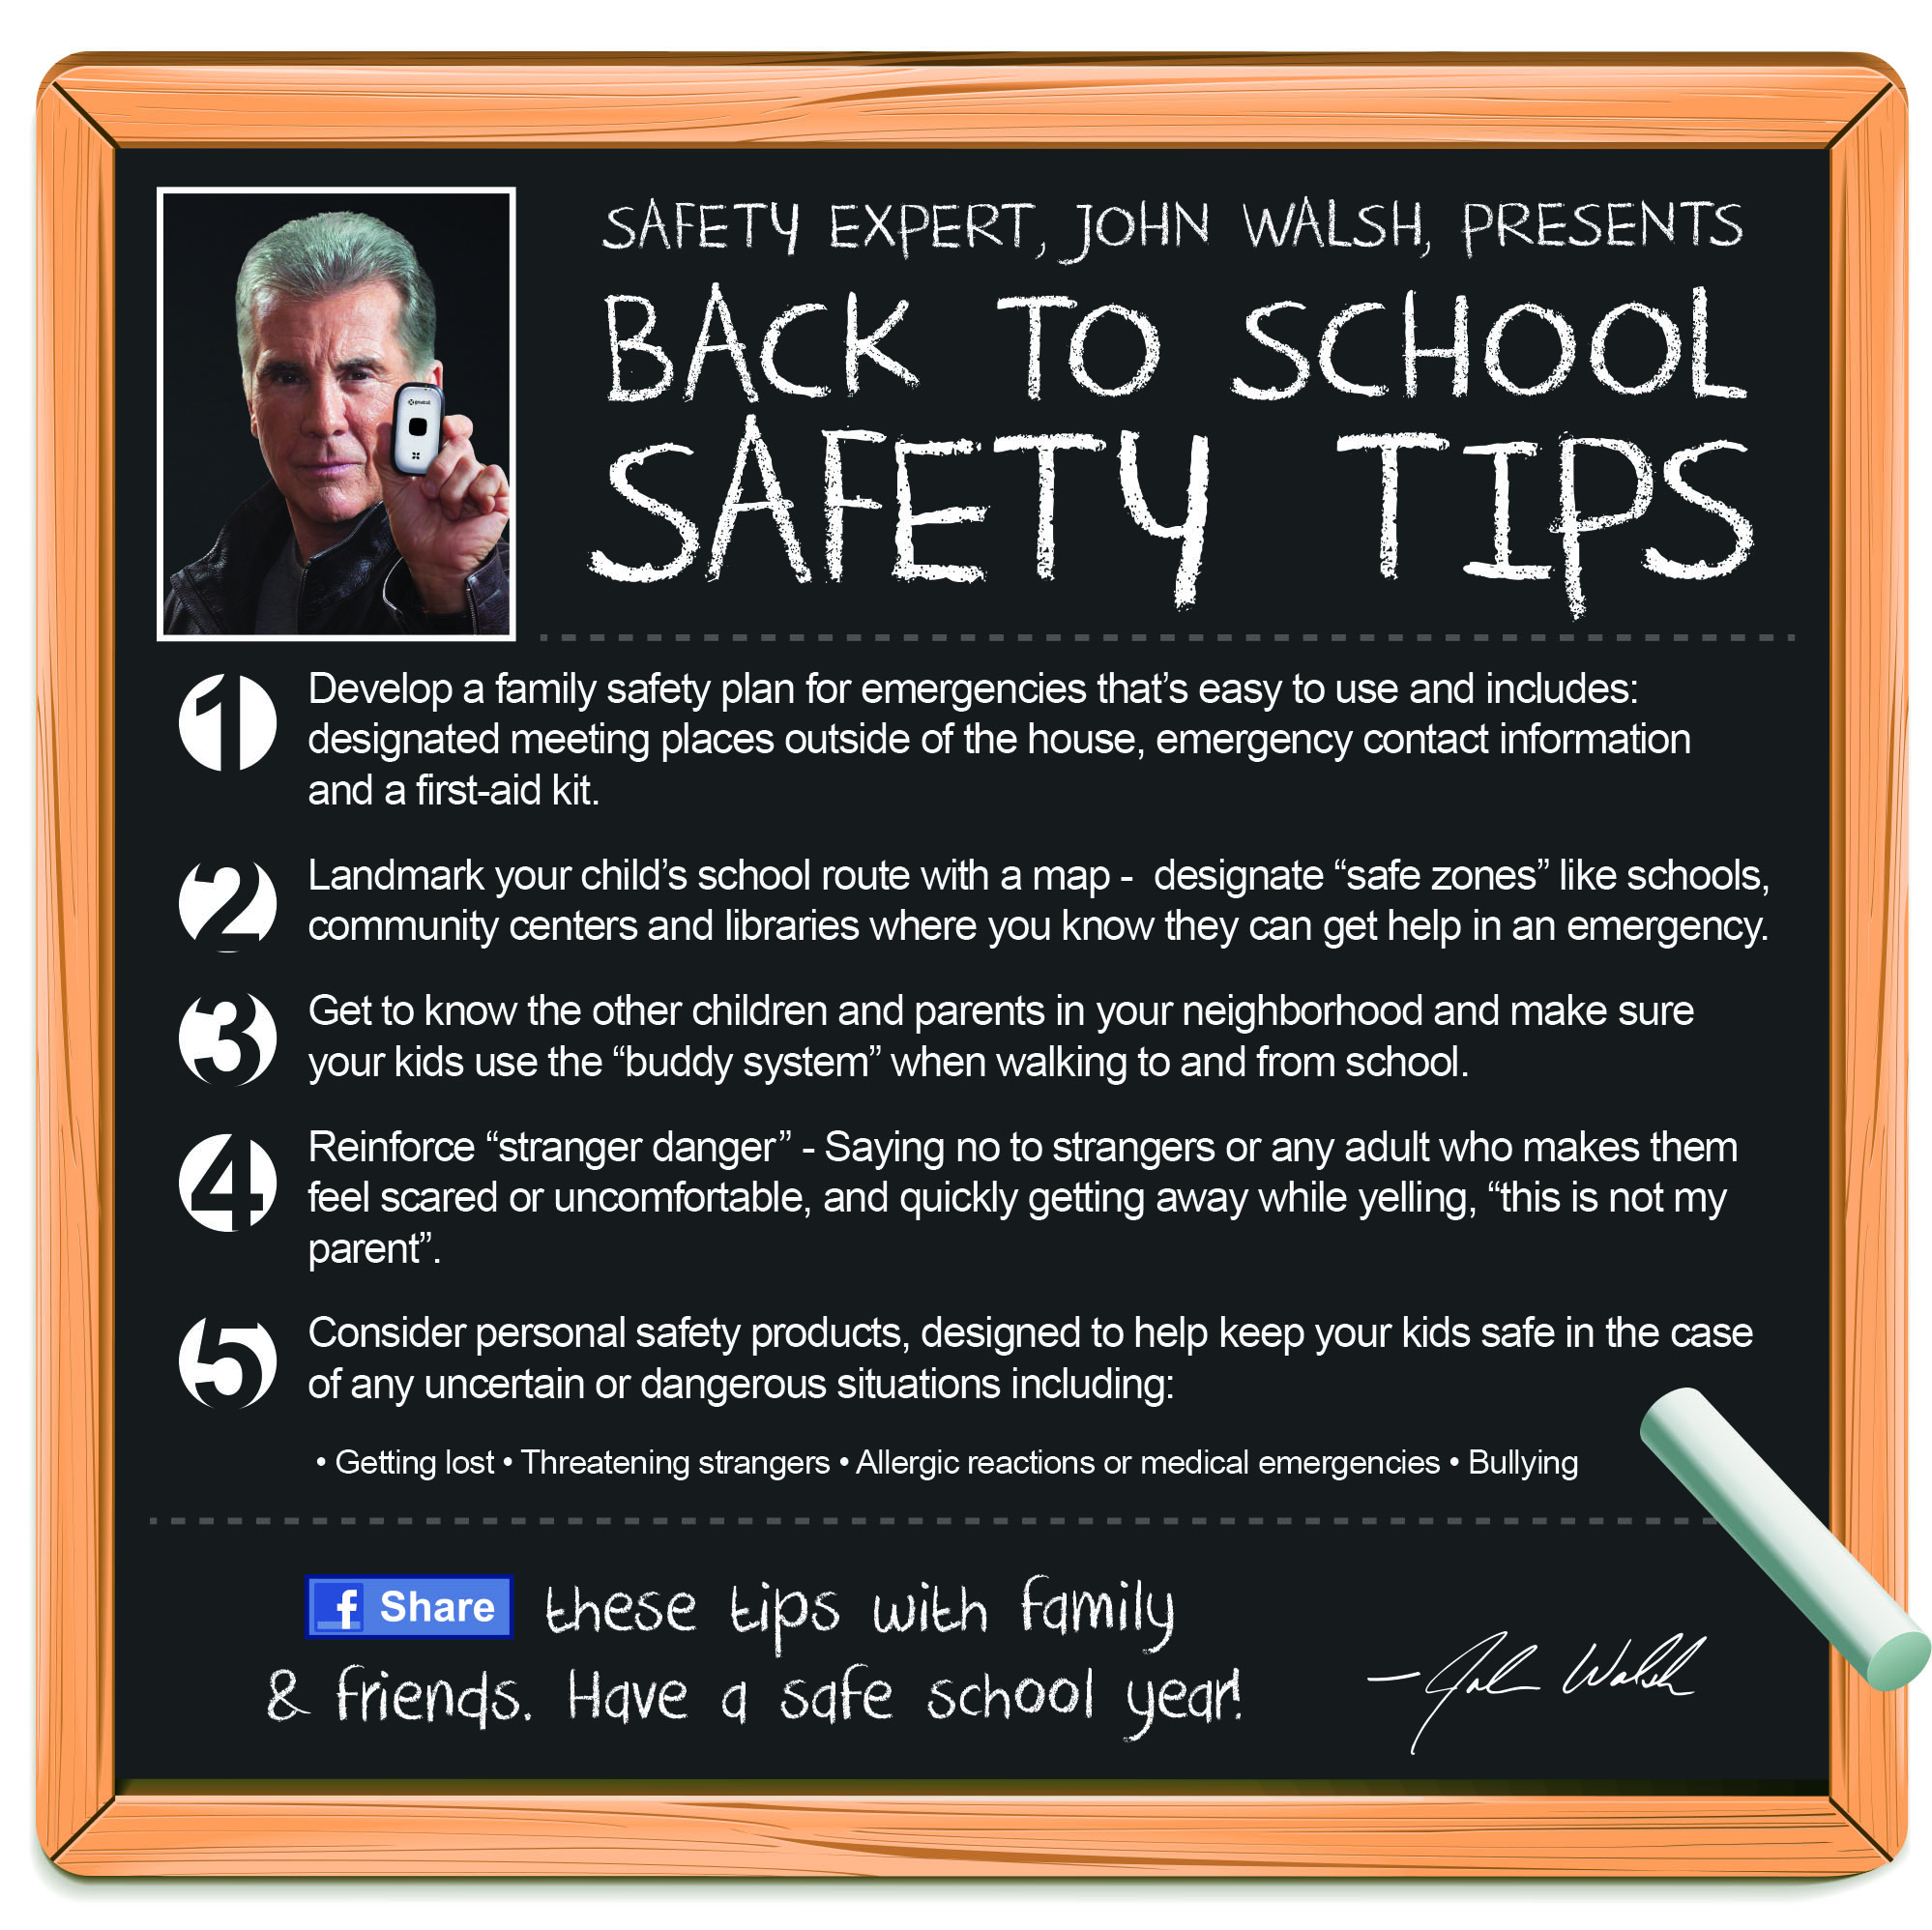 John Walsh Back To School Safety Tips